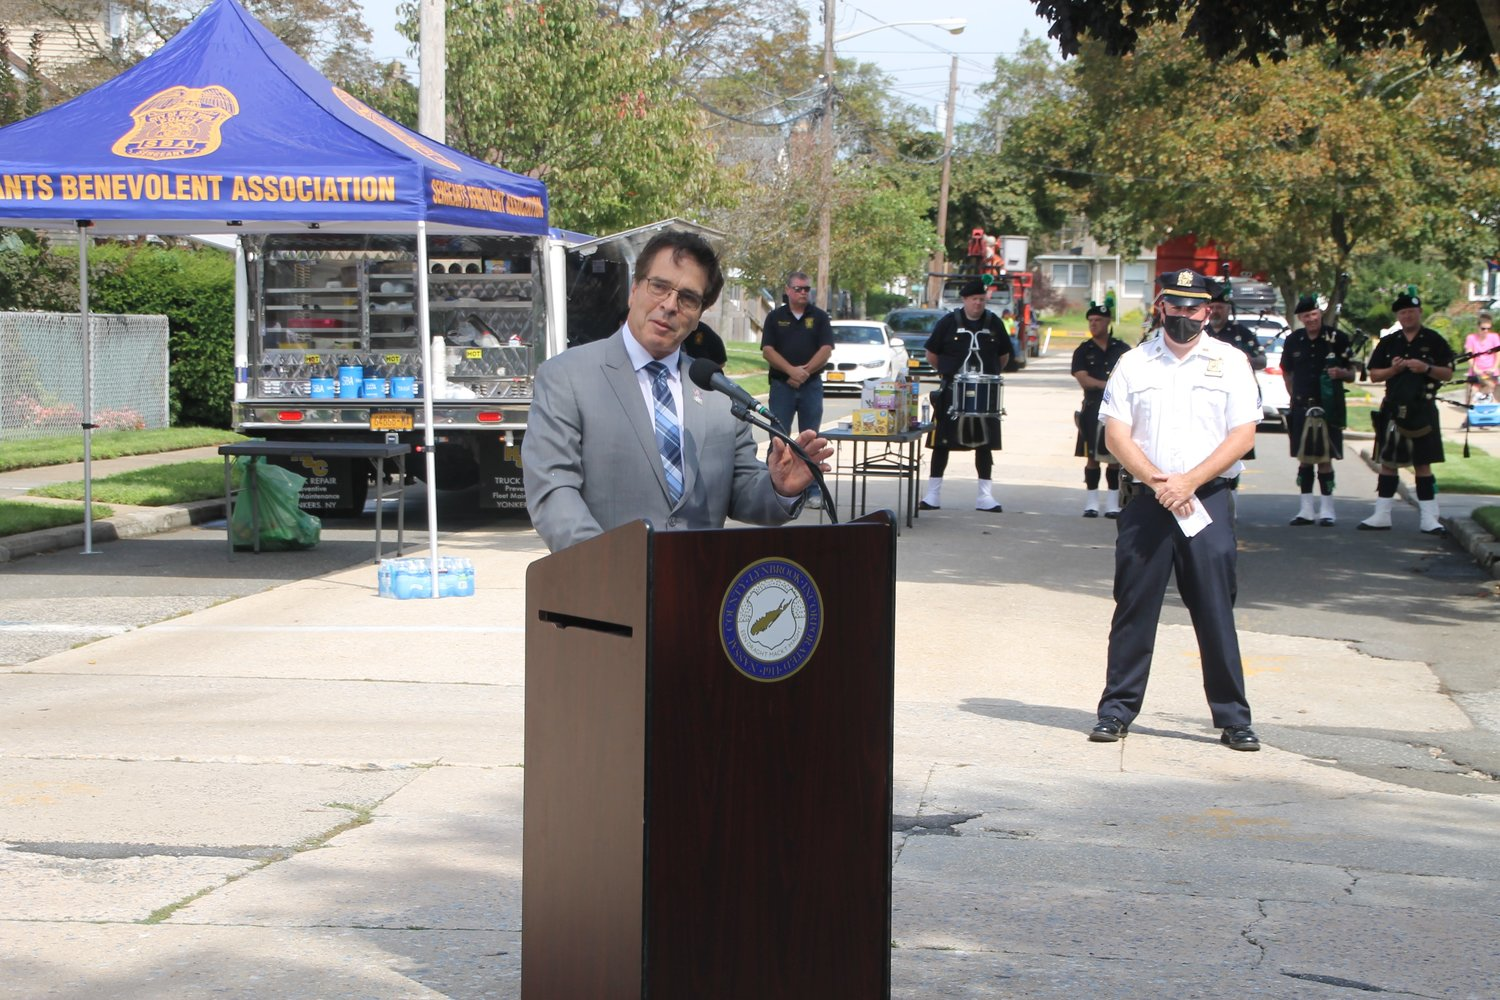 Lynbrook Mayor Alan Beach spoke at the ceremony.